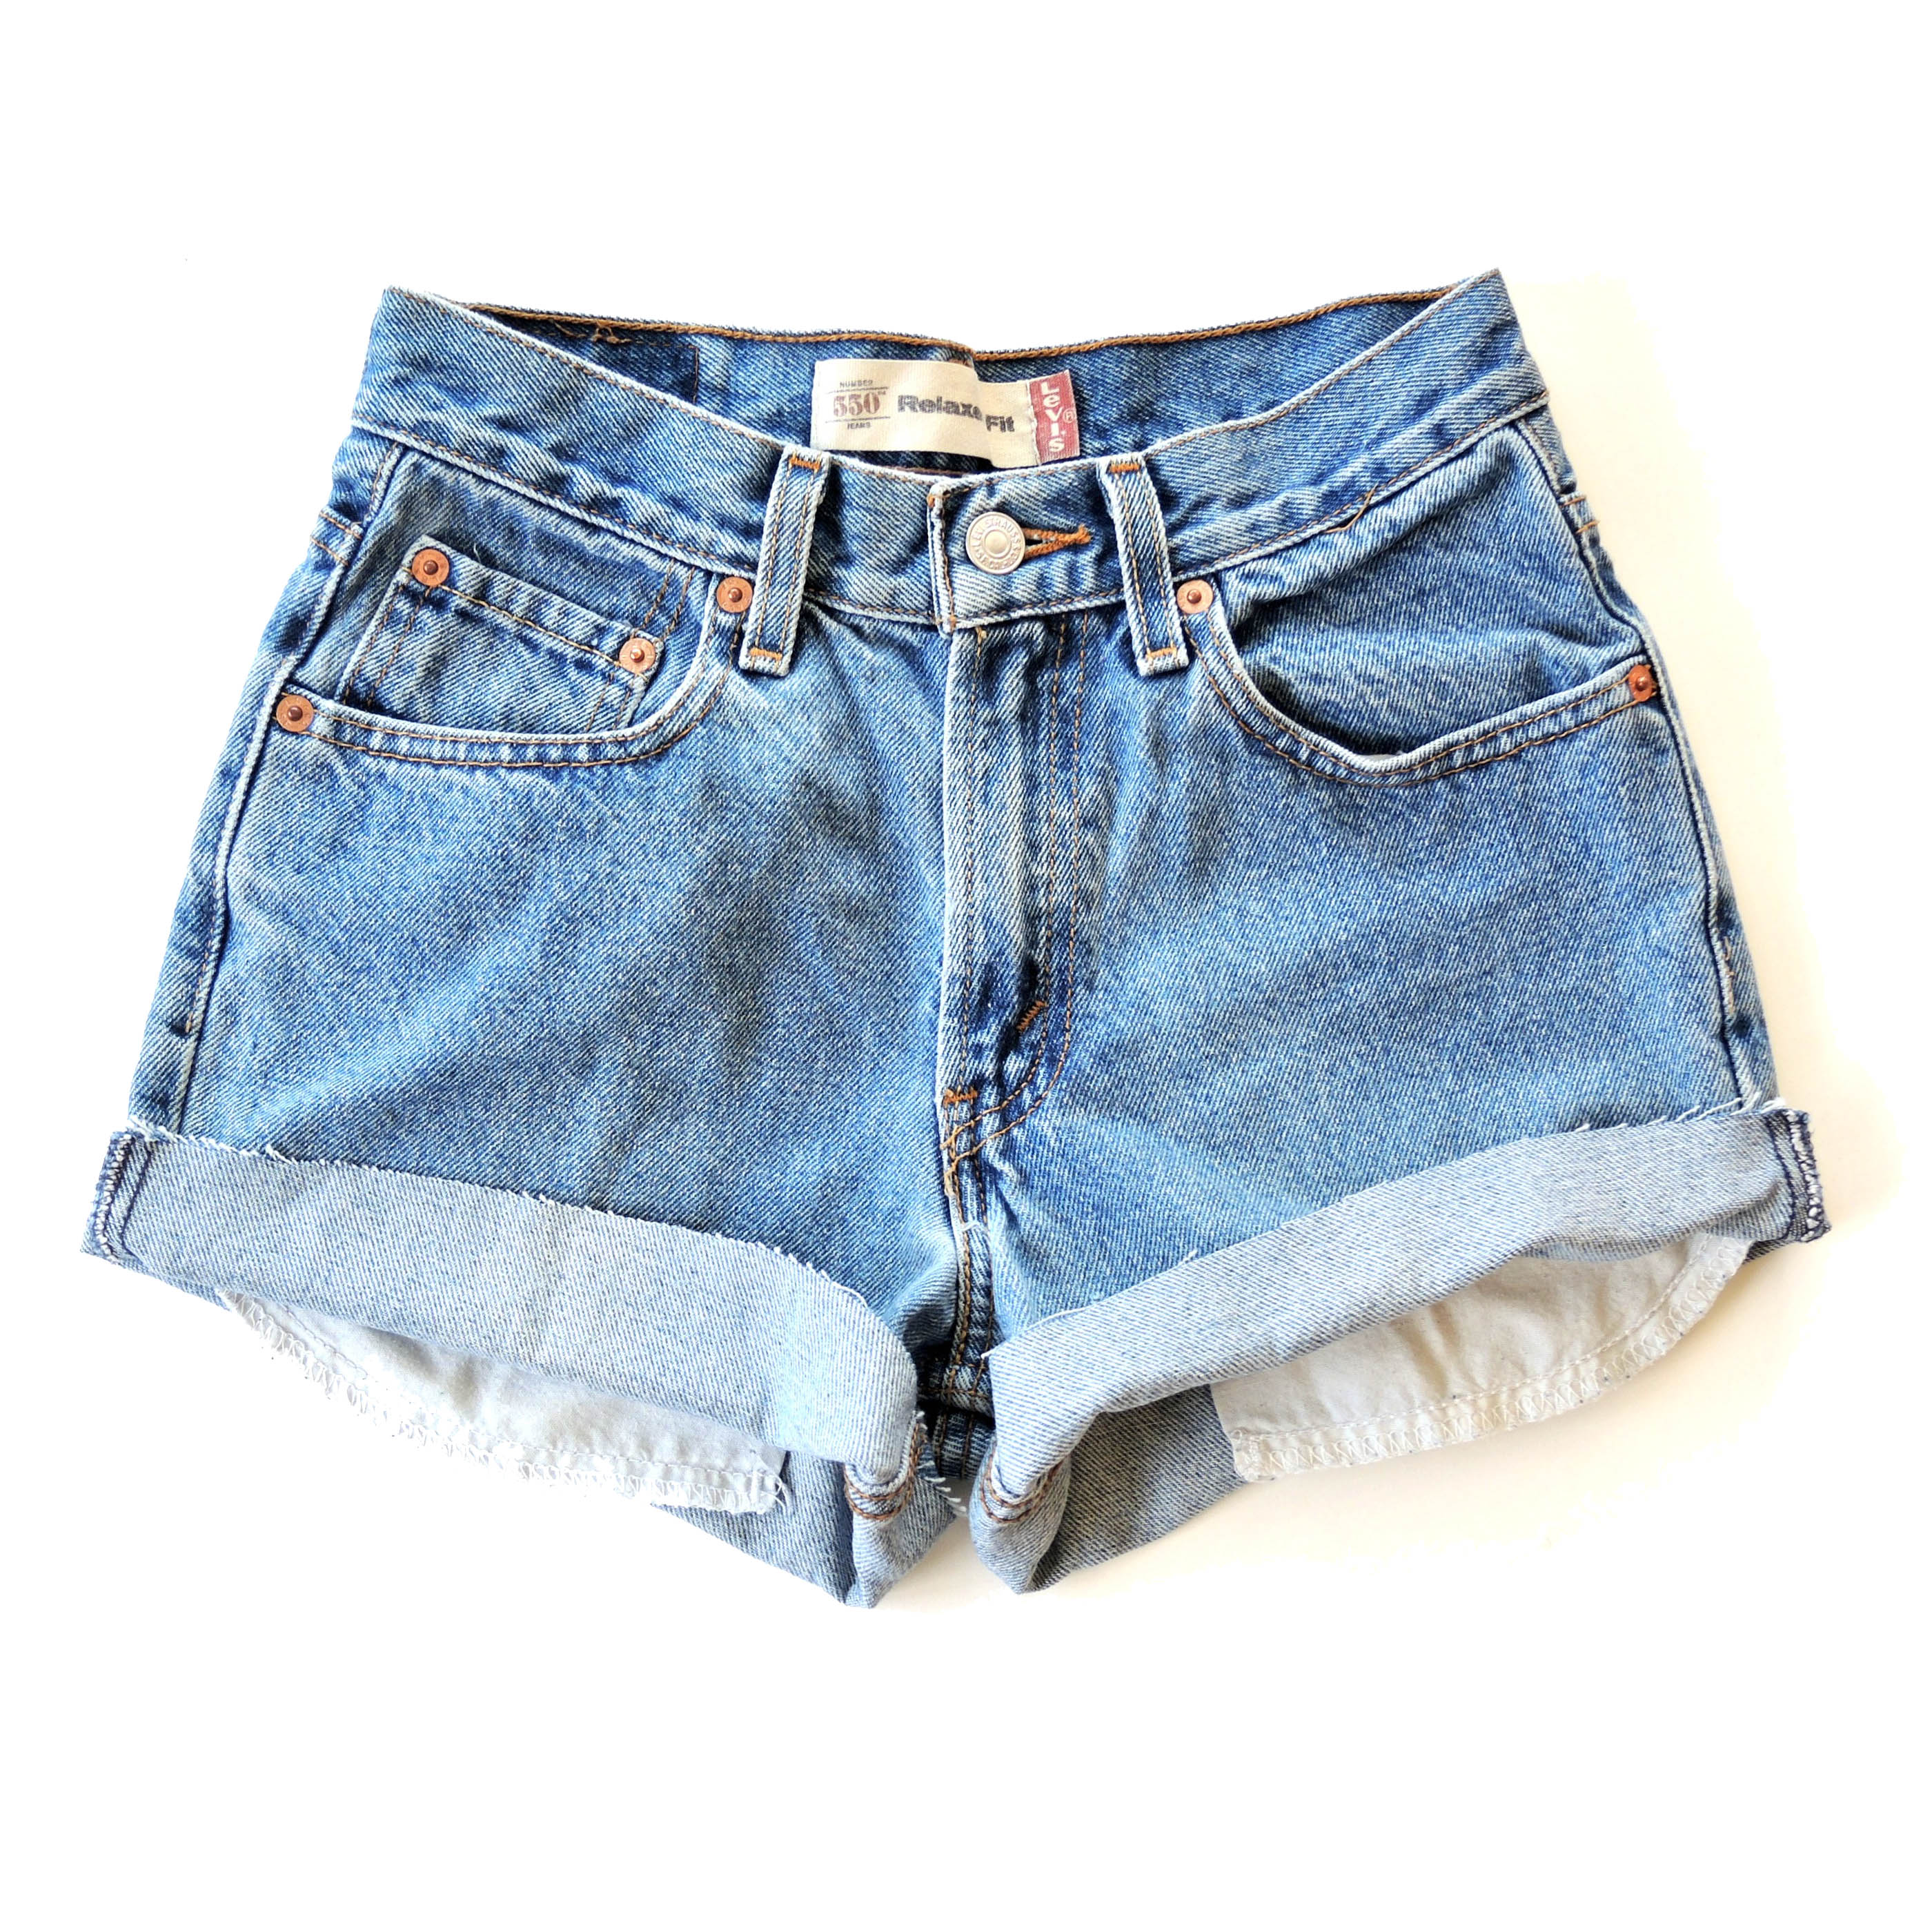 WASH from GET HIGH WAISTED on Storenvy